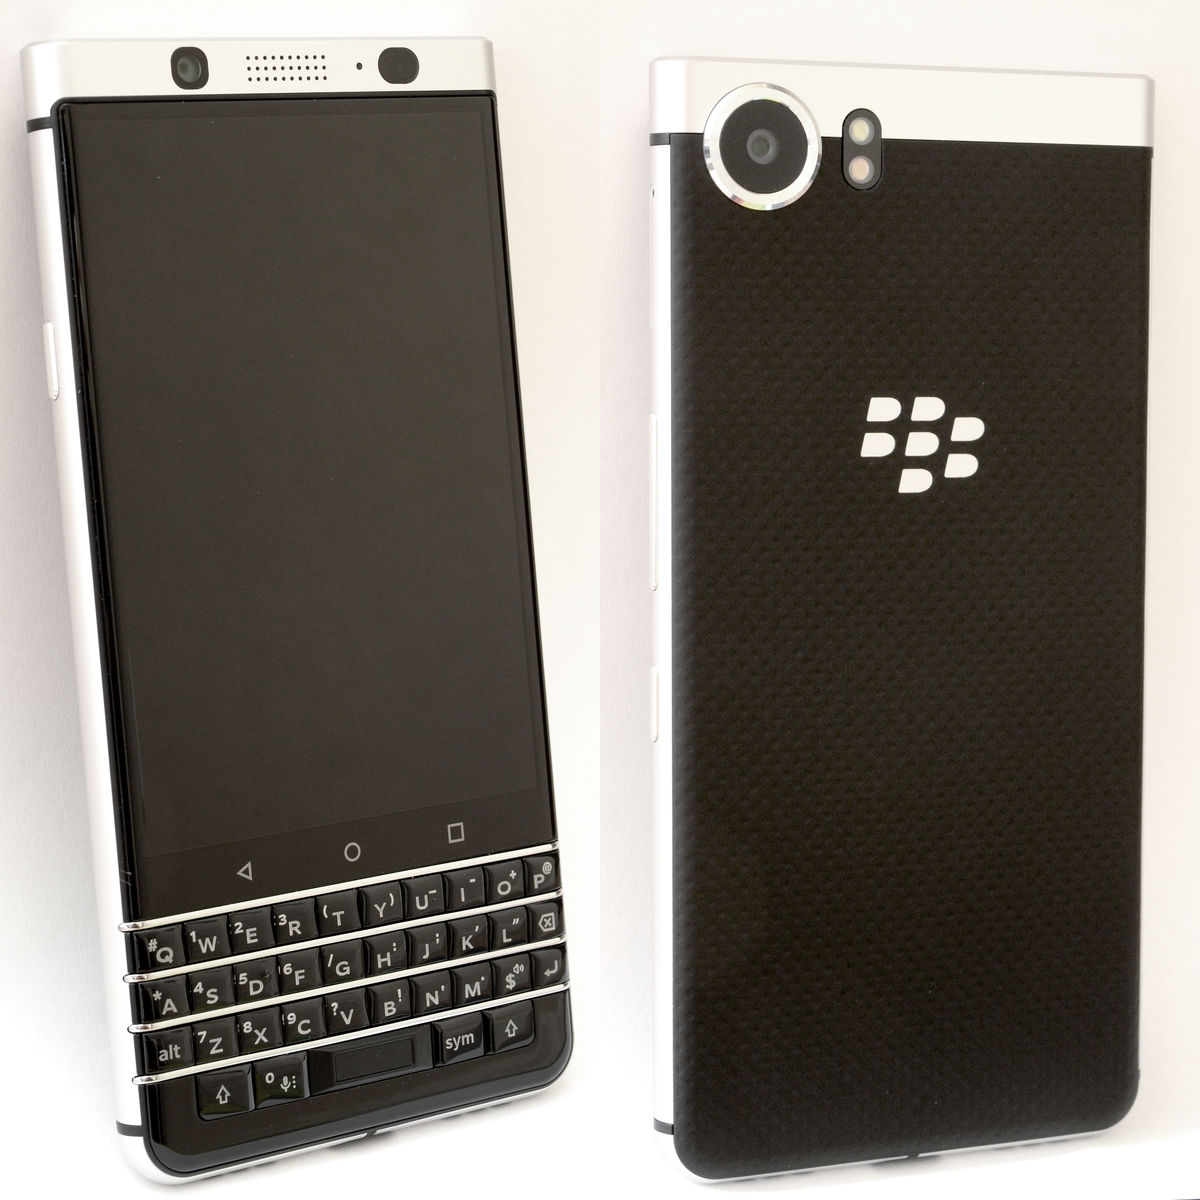 Blackberry Keyone Wikipedia